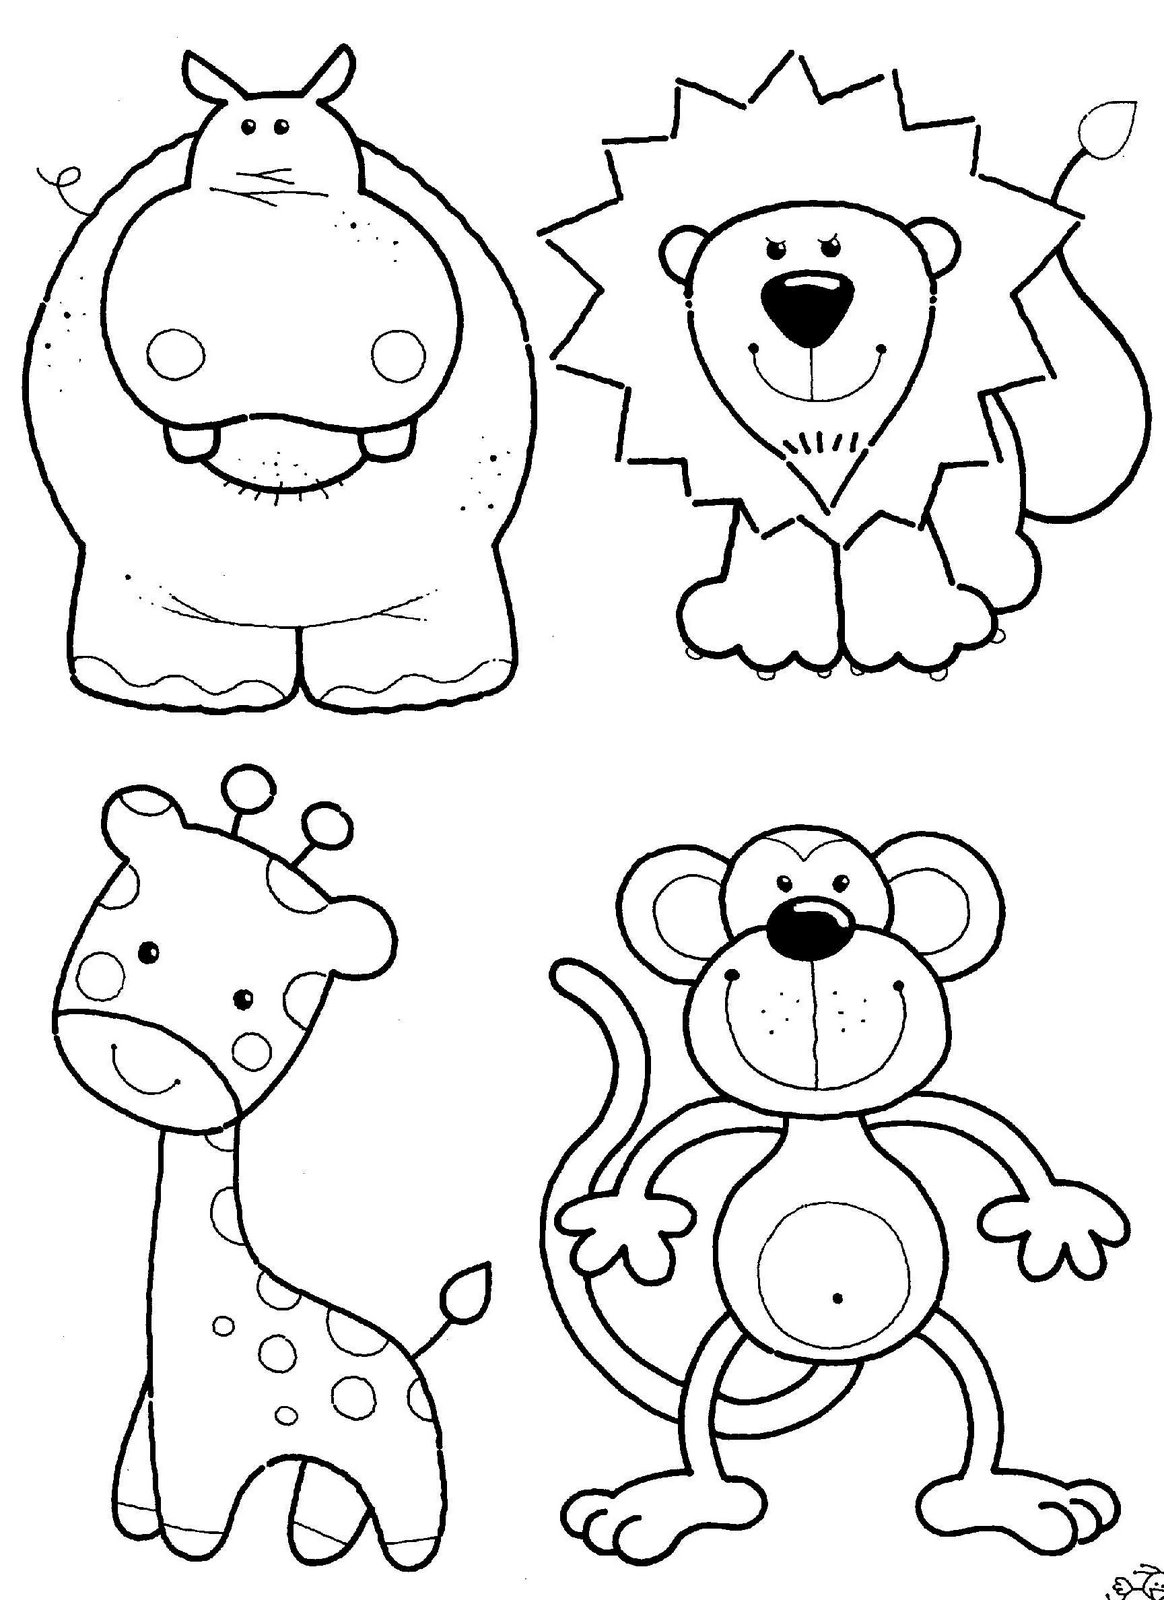 1164x1600 Selected Childrens Coloring Pages Animals Special Kids Design Gal